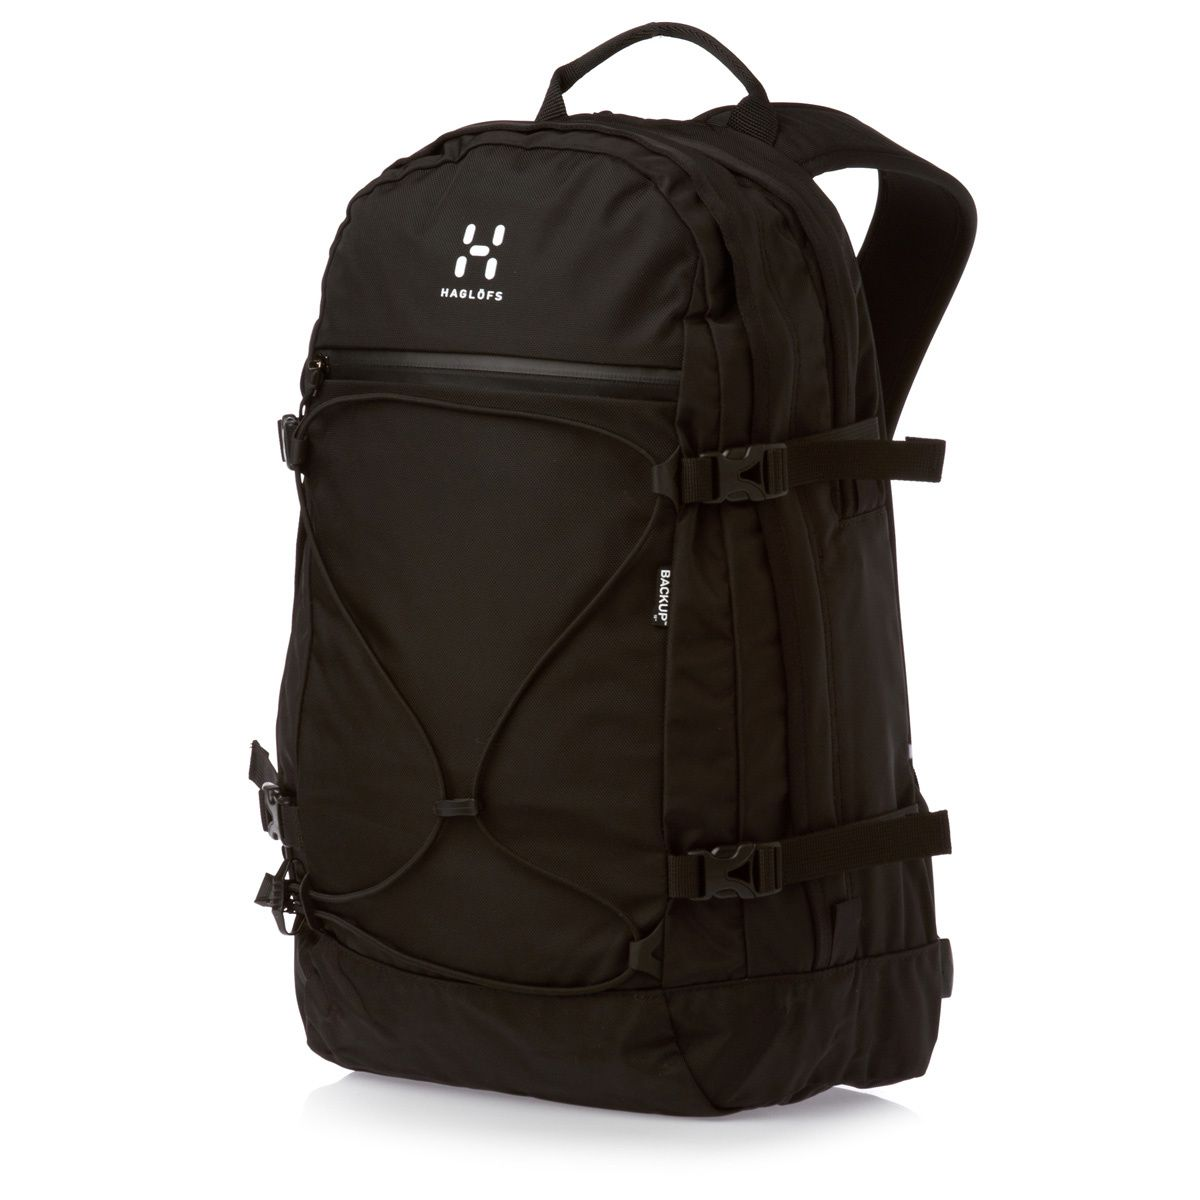 haglofs-backpacks-haglofs-backup-15-backpack-true-black